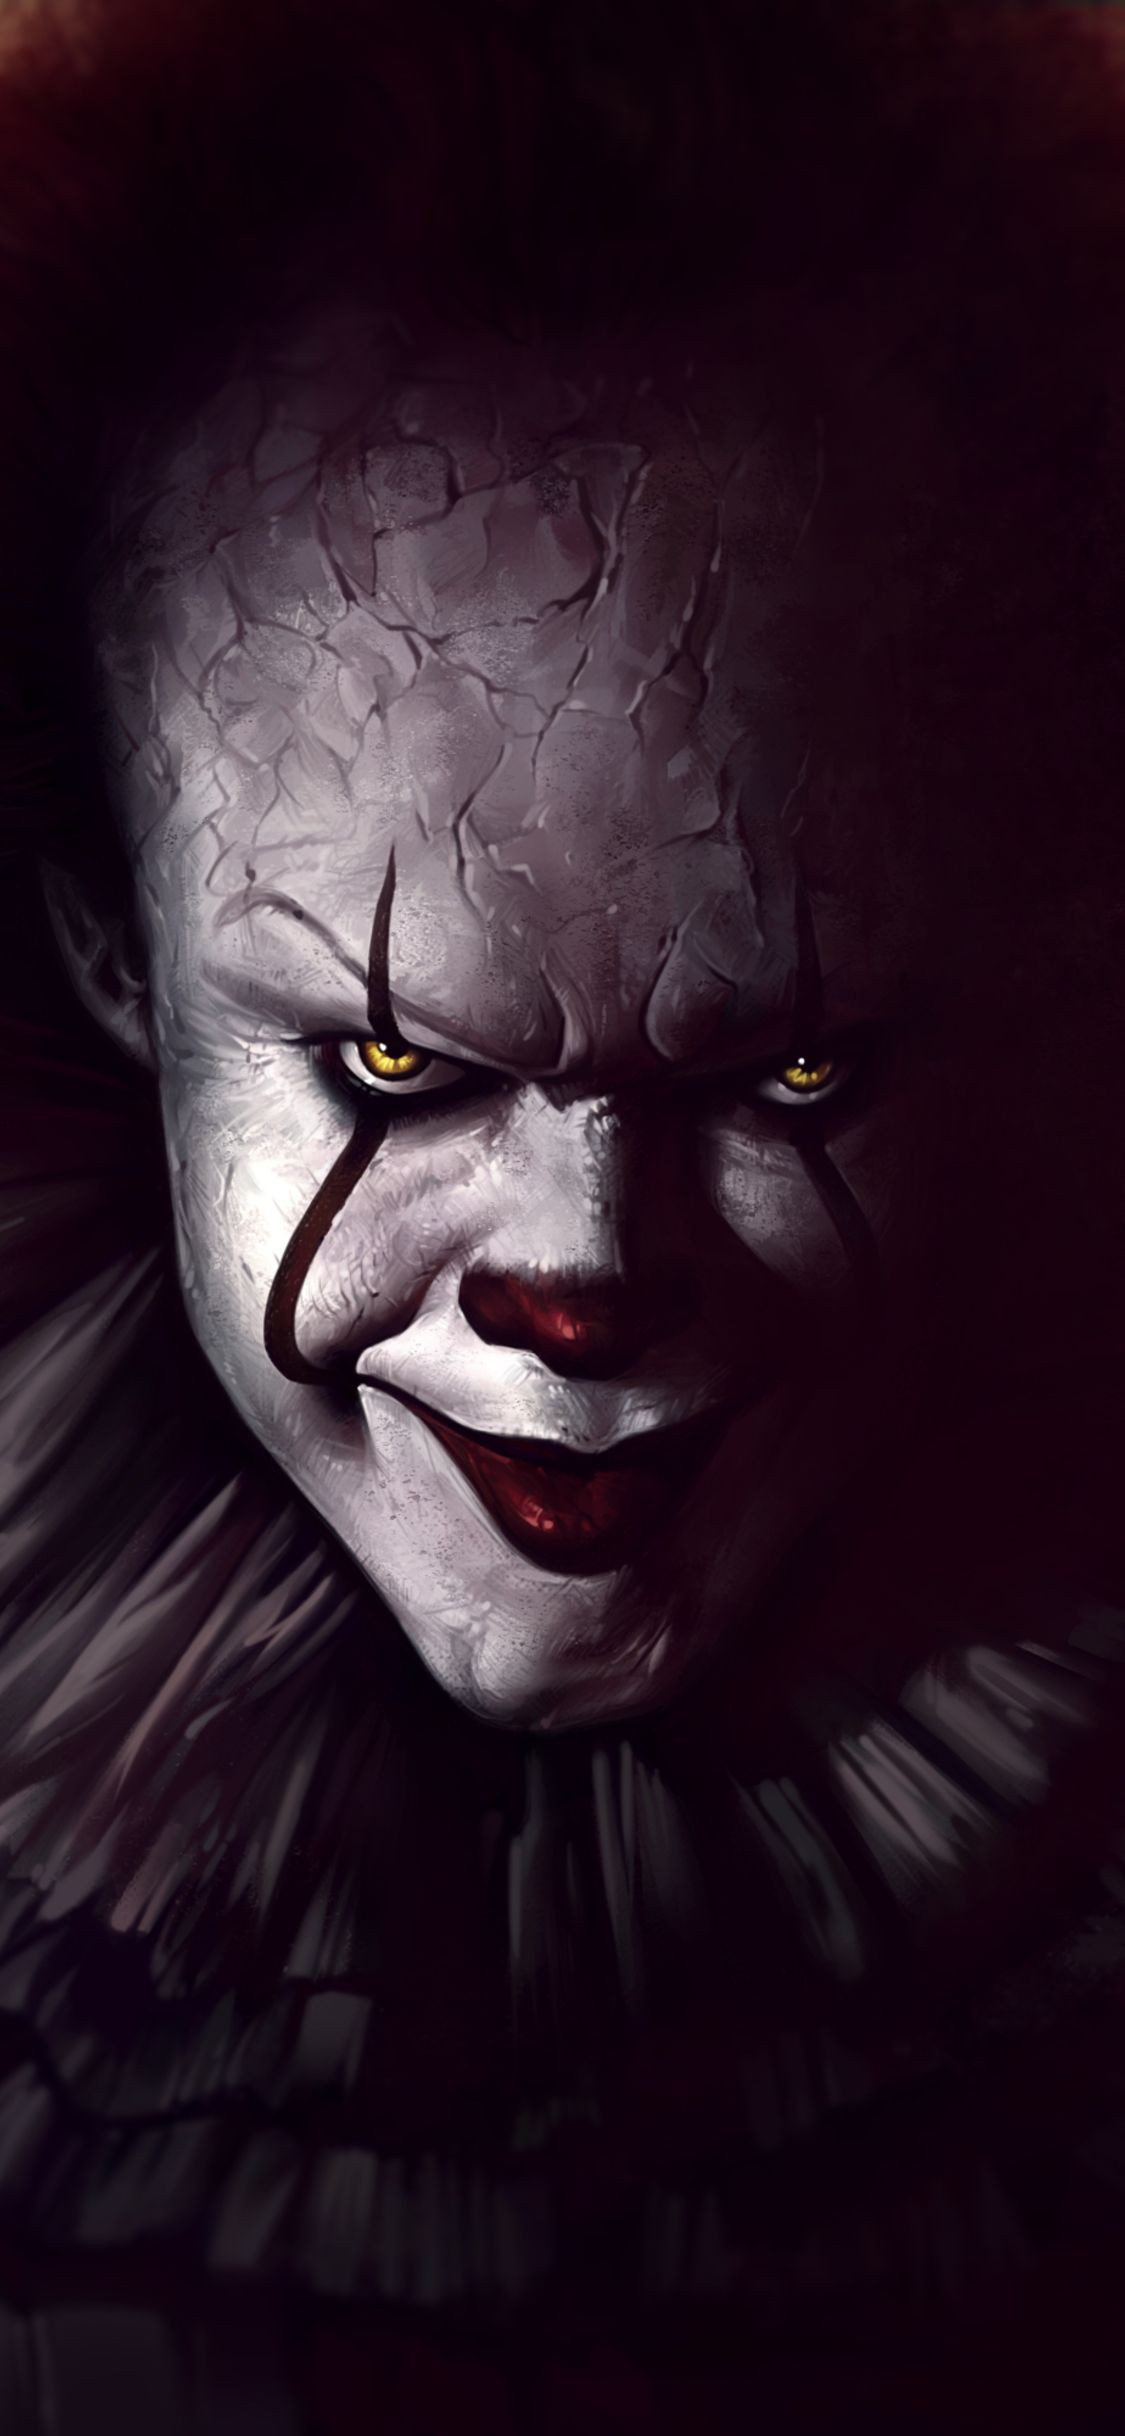 0x0 1125x2436 Pennywise The Clown Fanart Iphone XS,Iphone 10,Iphone X HD ...